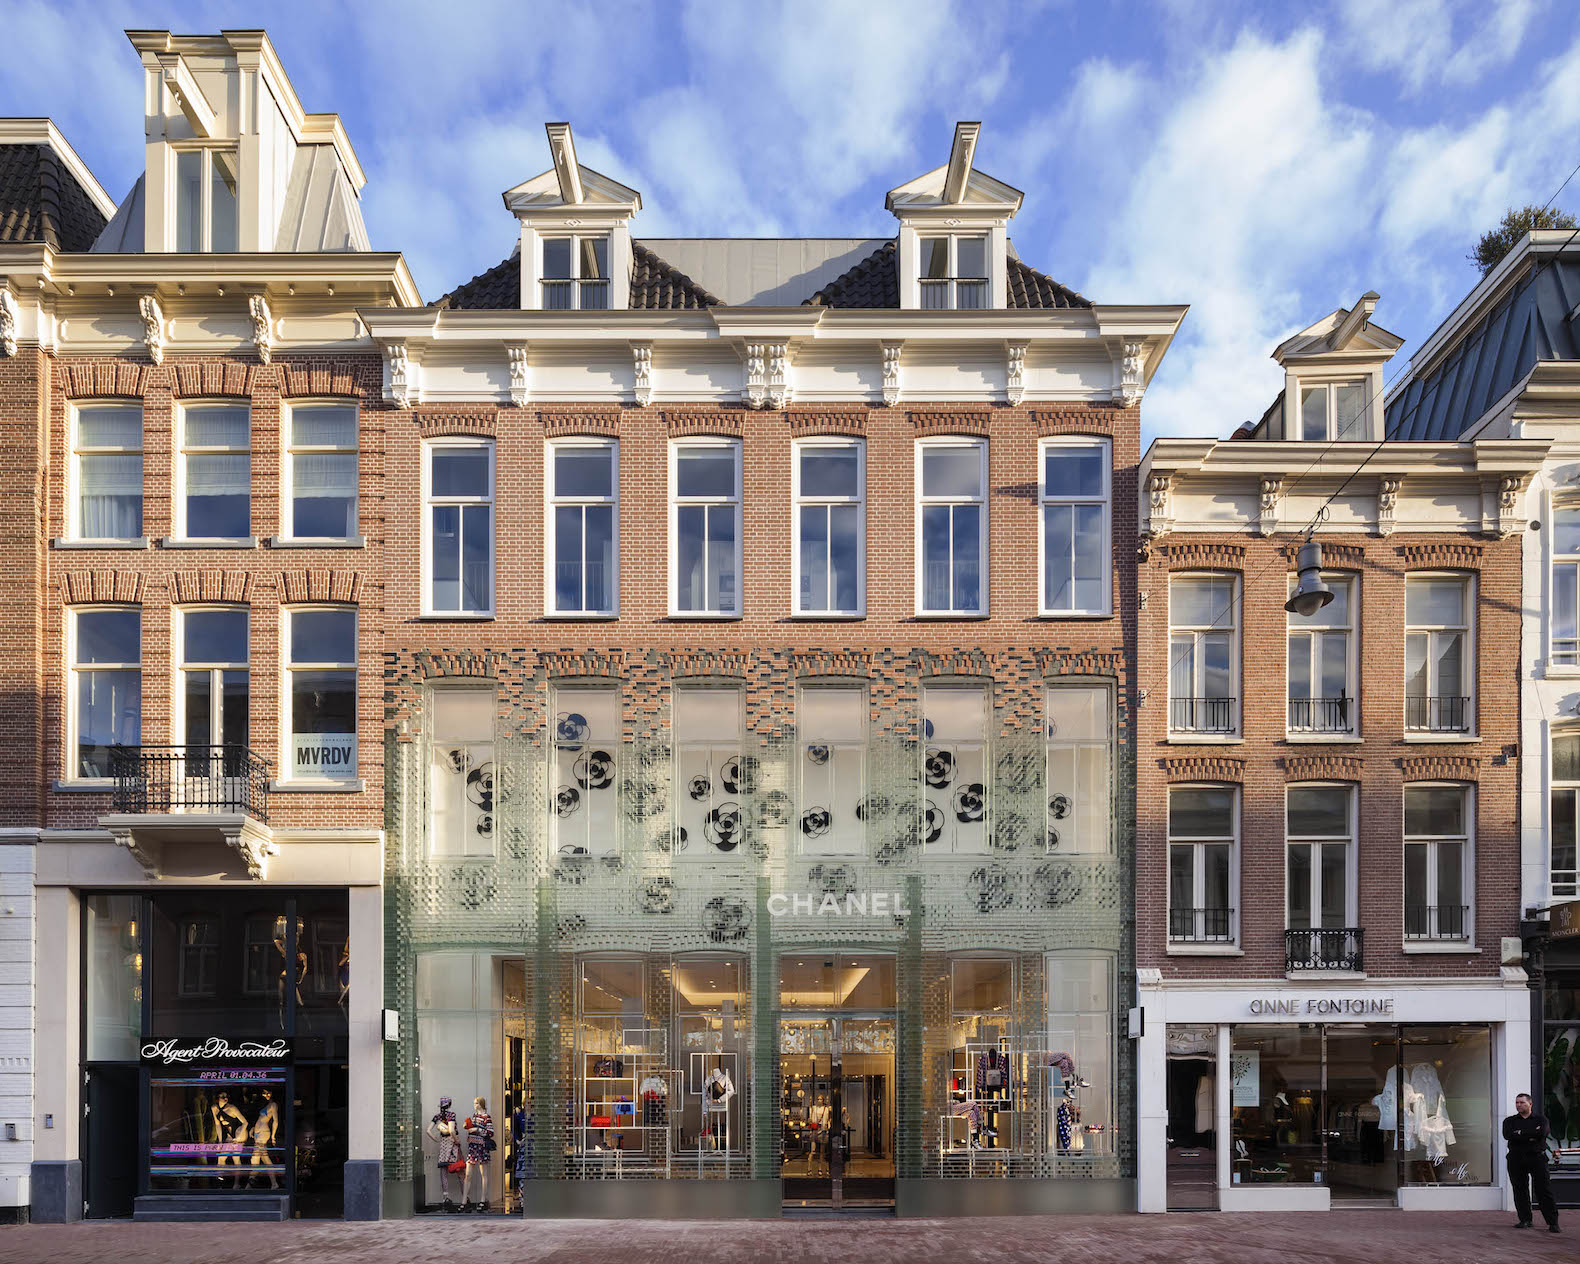 Glass stronger than concrete chanel shop in amsterdam chanel pc hooftstraat amsterdam glass